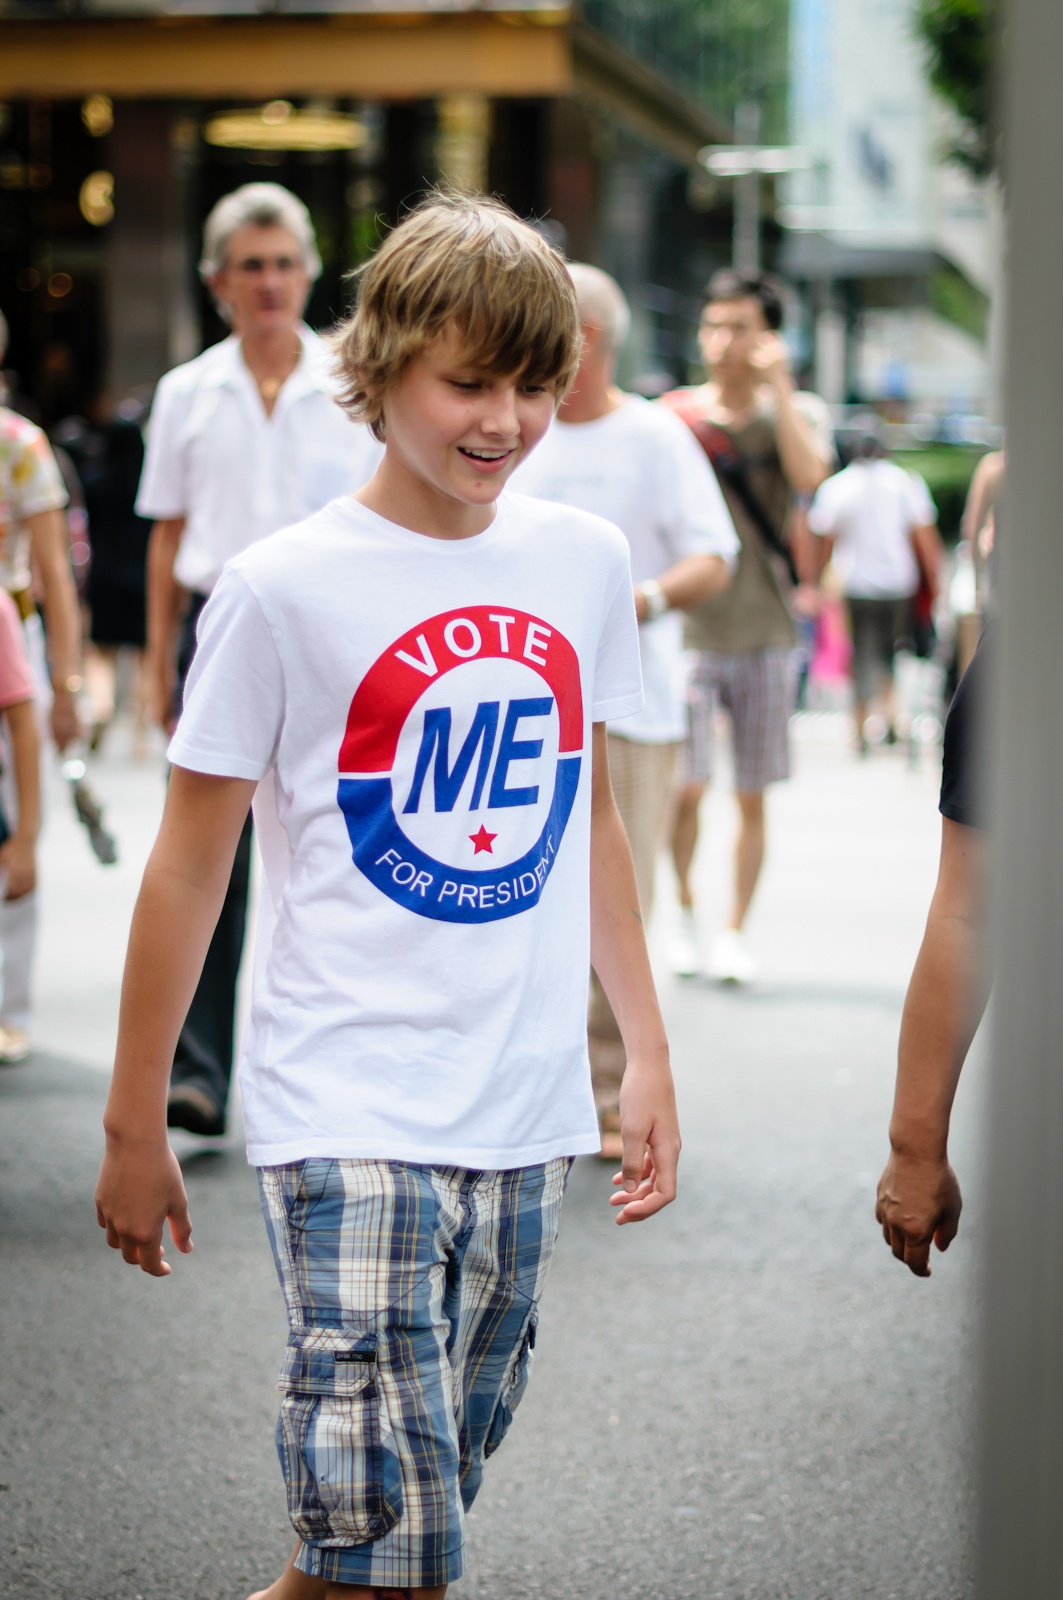 Street photography - boy wearing t-shirt that says vote me for president